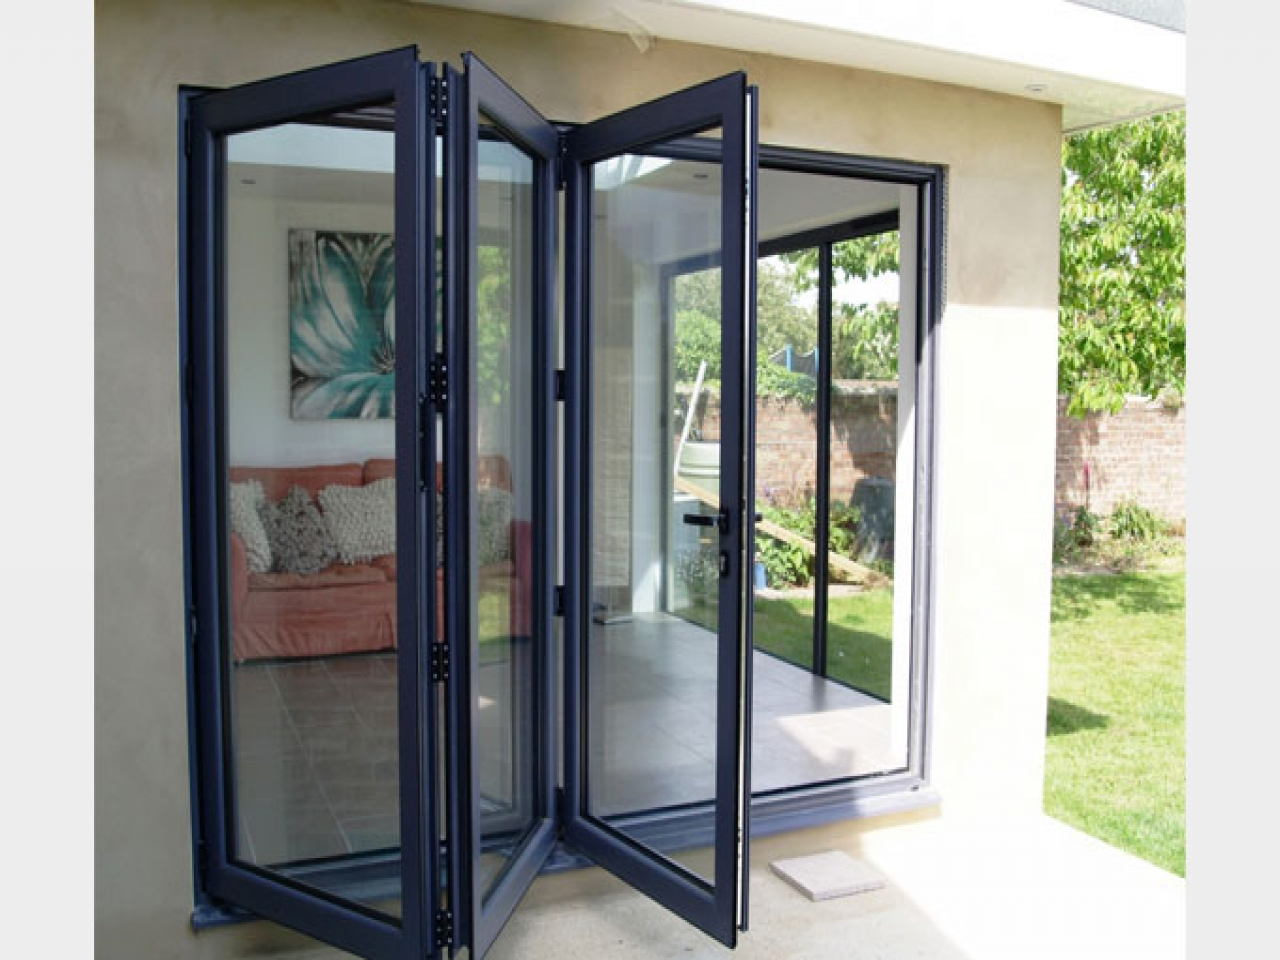 Residential Windows Amp Doors South Coast Windows Amp Doors